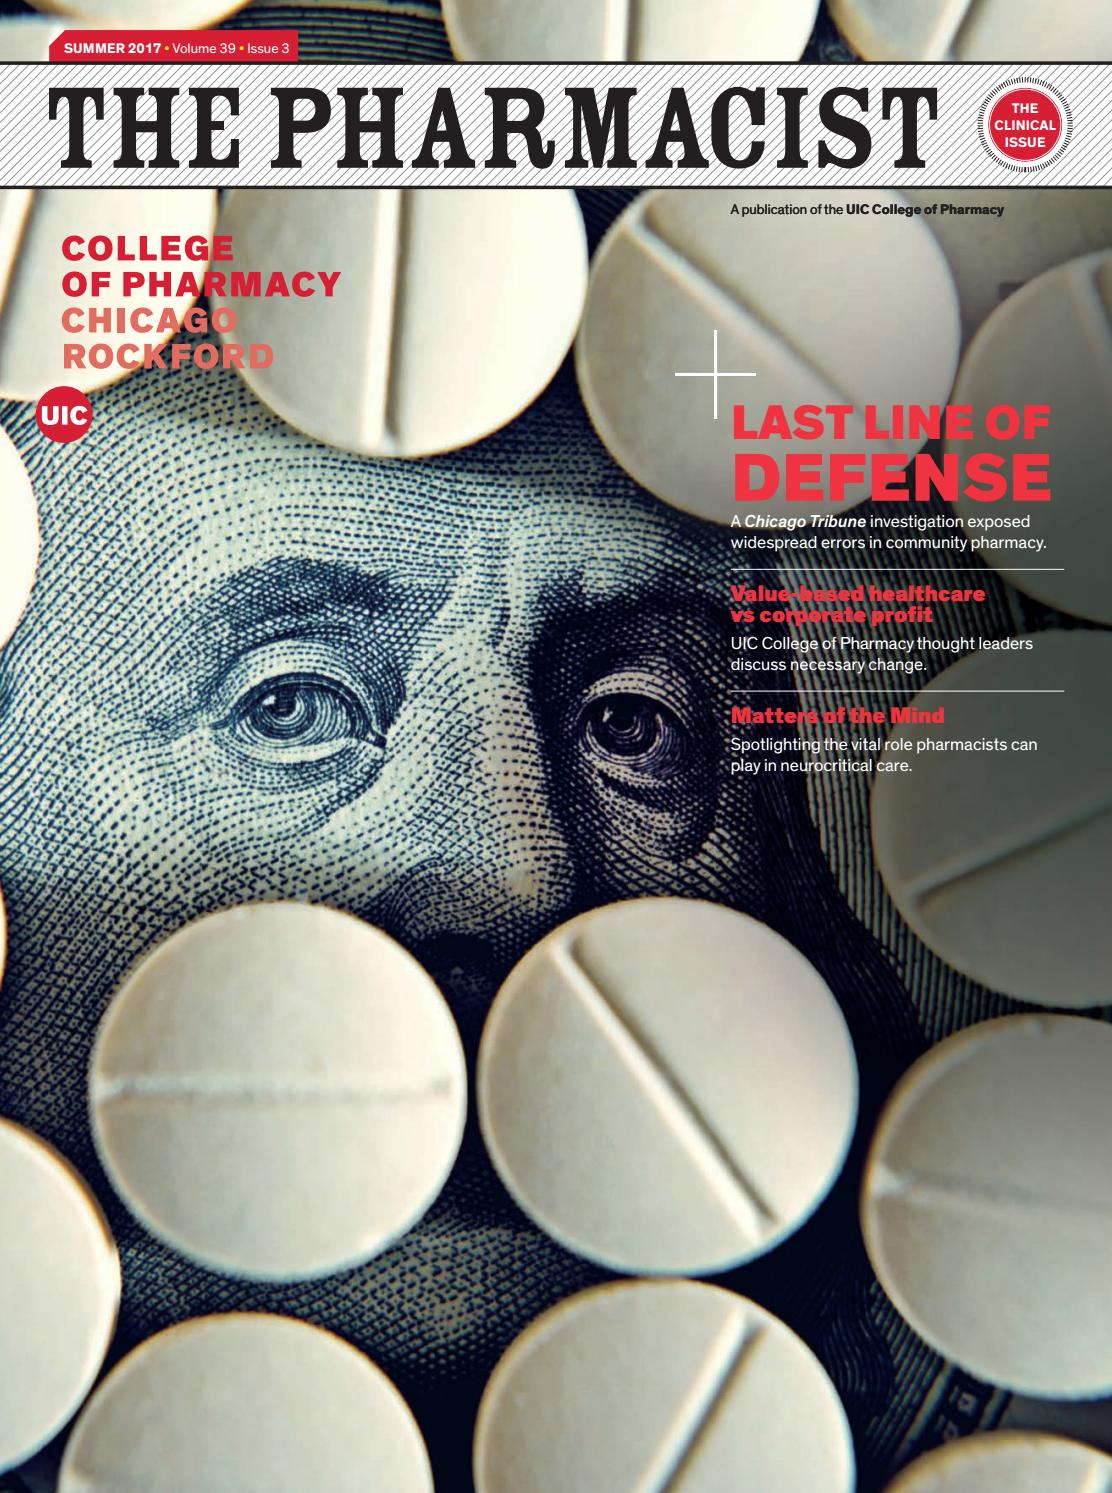 f5ba40c47a The Pharmacist - The Clinical Issue/Summer 2017 by UIC College of ...